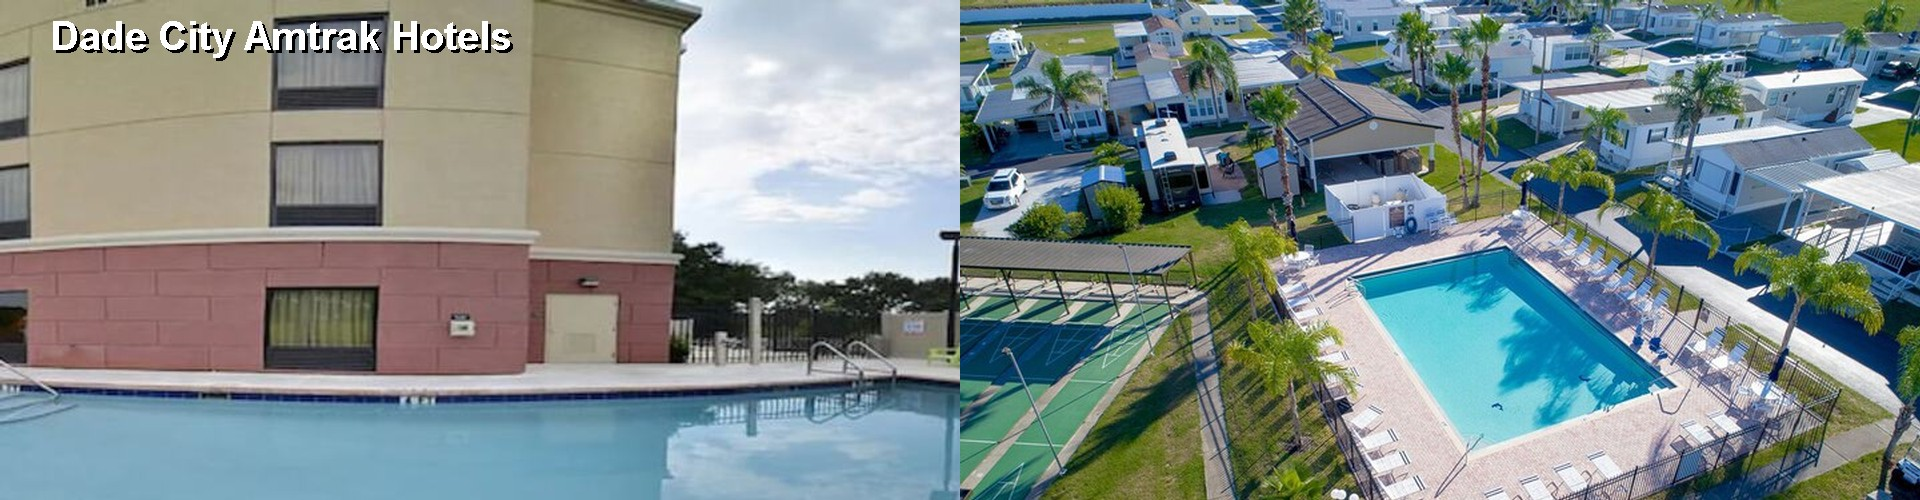 5 Best Hotels near Dade City Amtrak